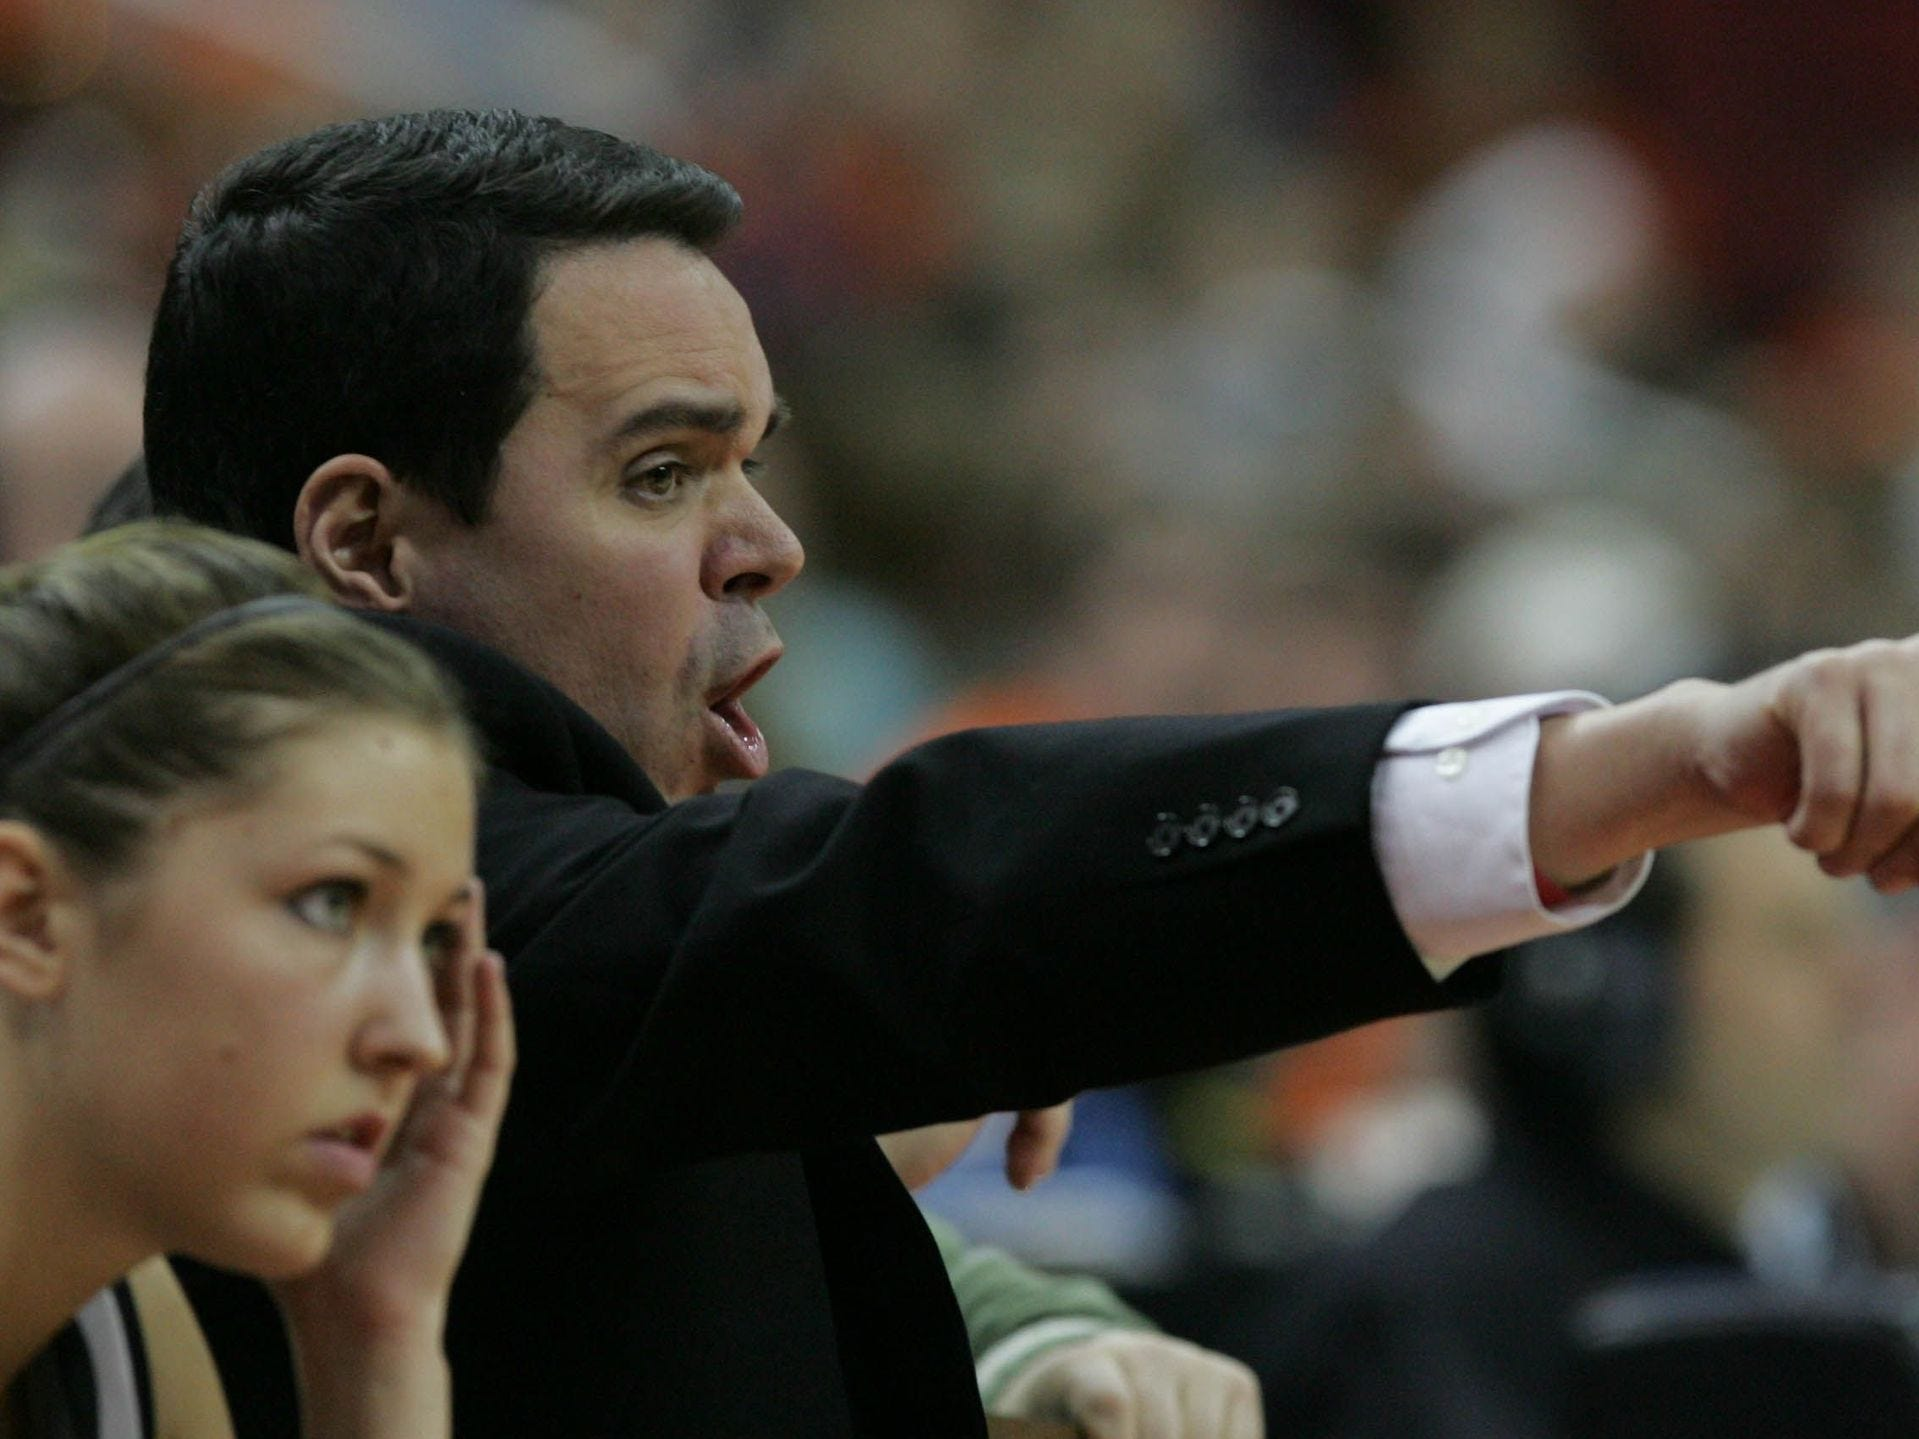 2009: Springville's coach Brian O'Donnell yells to players in the final minute of their win over Martensdale-St. Marys in their 1A quarterfinal at the state girls' basketball tournament. Register file photo